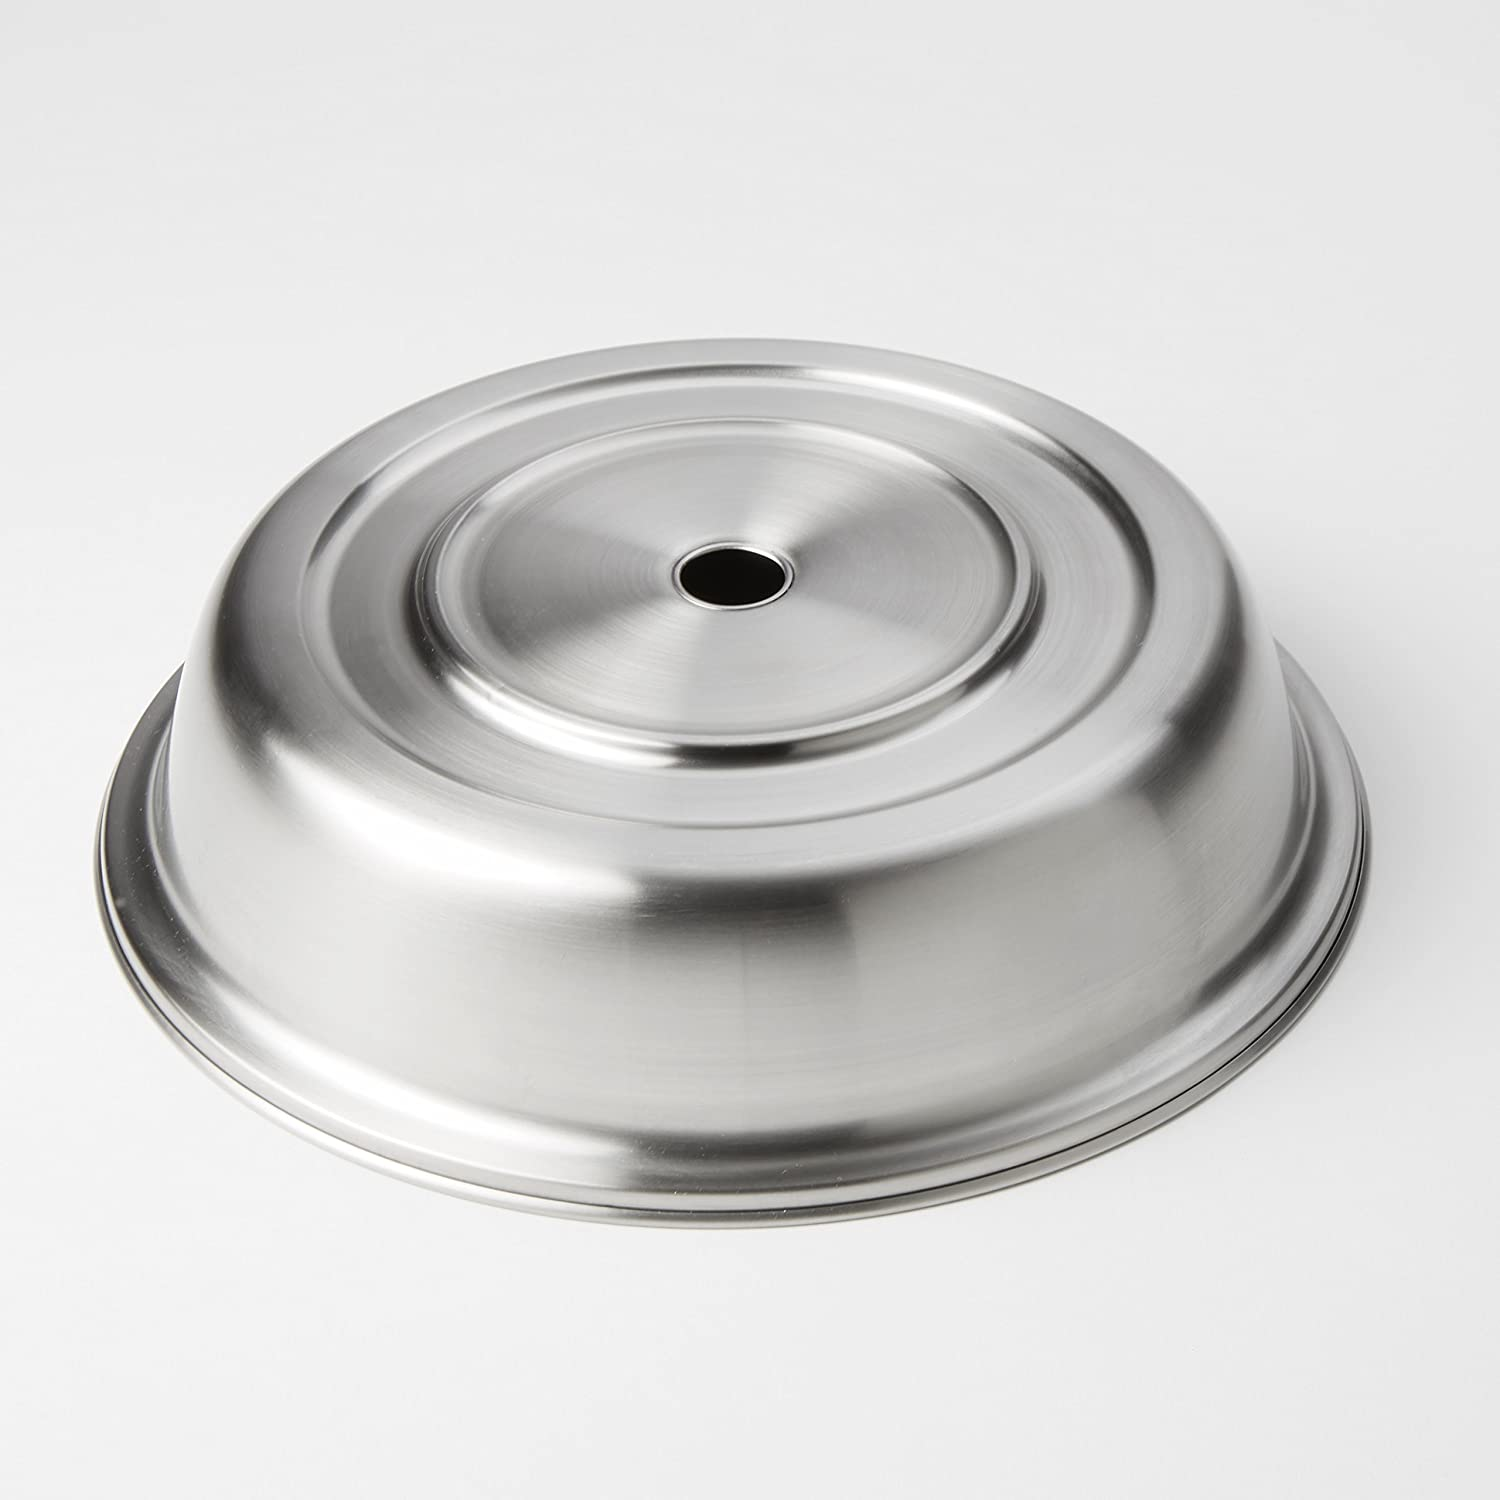 American Metalcraft PC1025S Round Stainless Steel Plate Cover, Standard or English-Style Foot